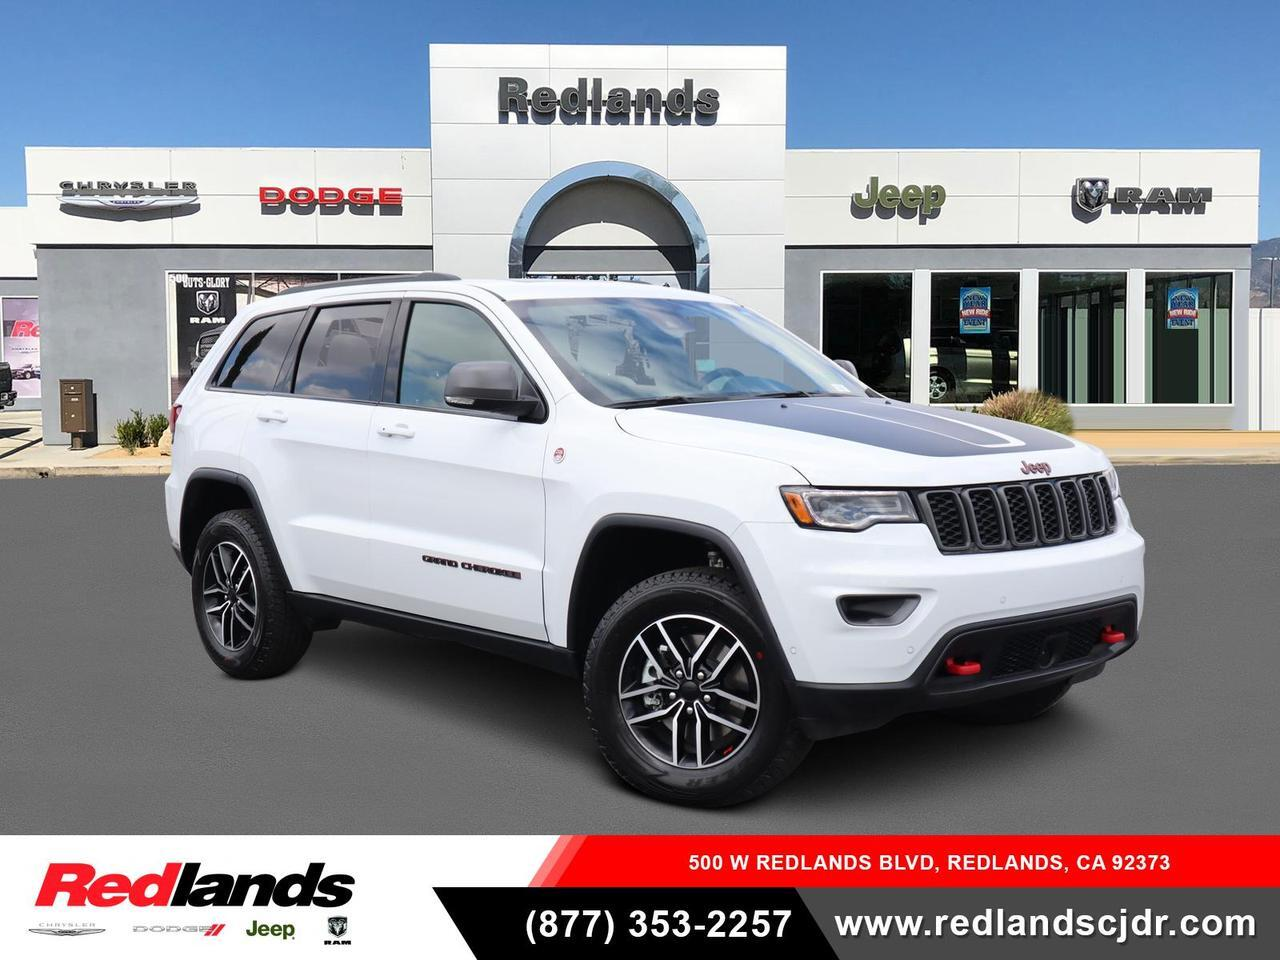 2021 Jeep Grand Cherokee TRAILHAWK 4X4 Redlands CA